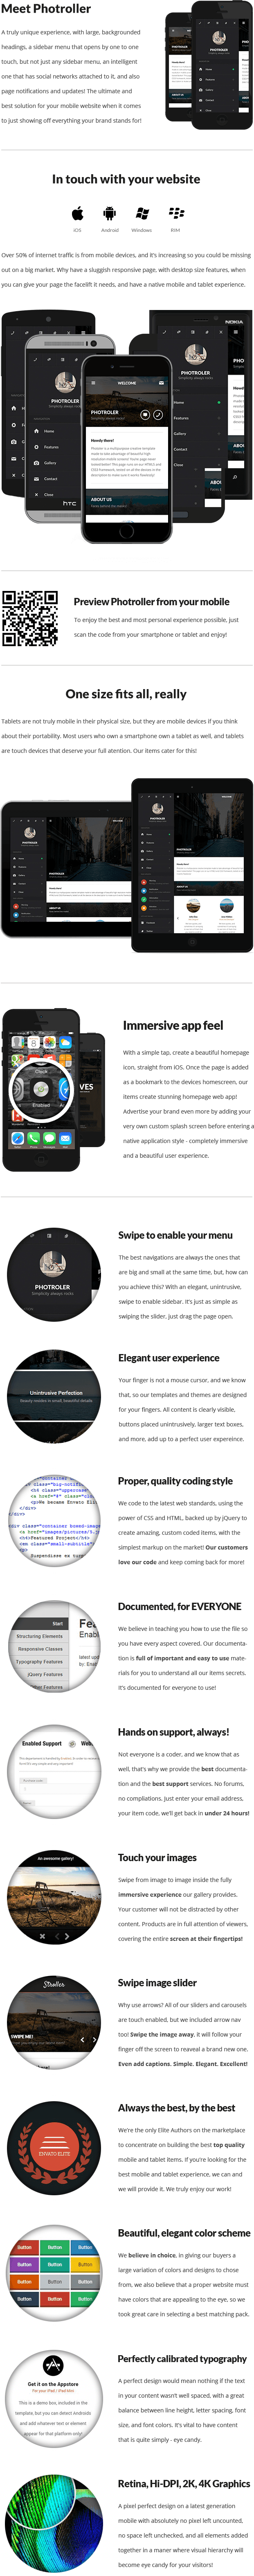 Photroller | Mobile & Tablet Responsive Template